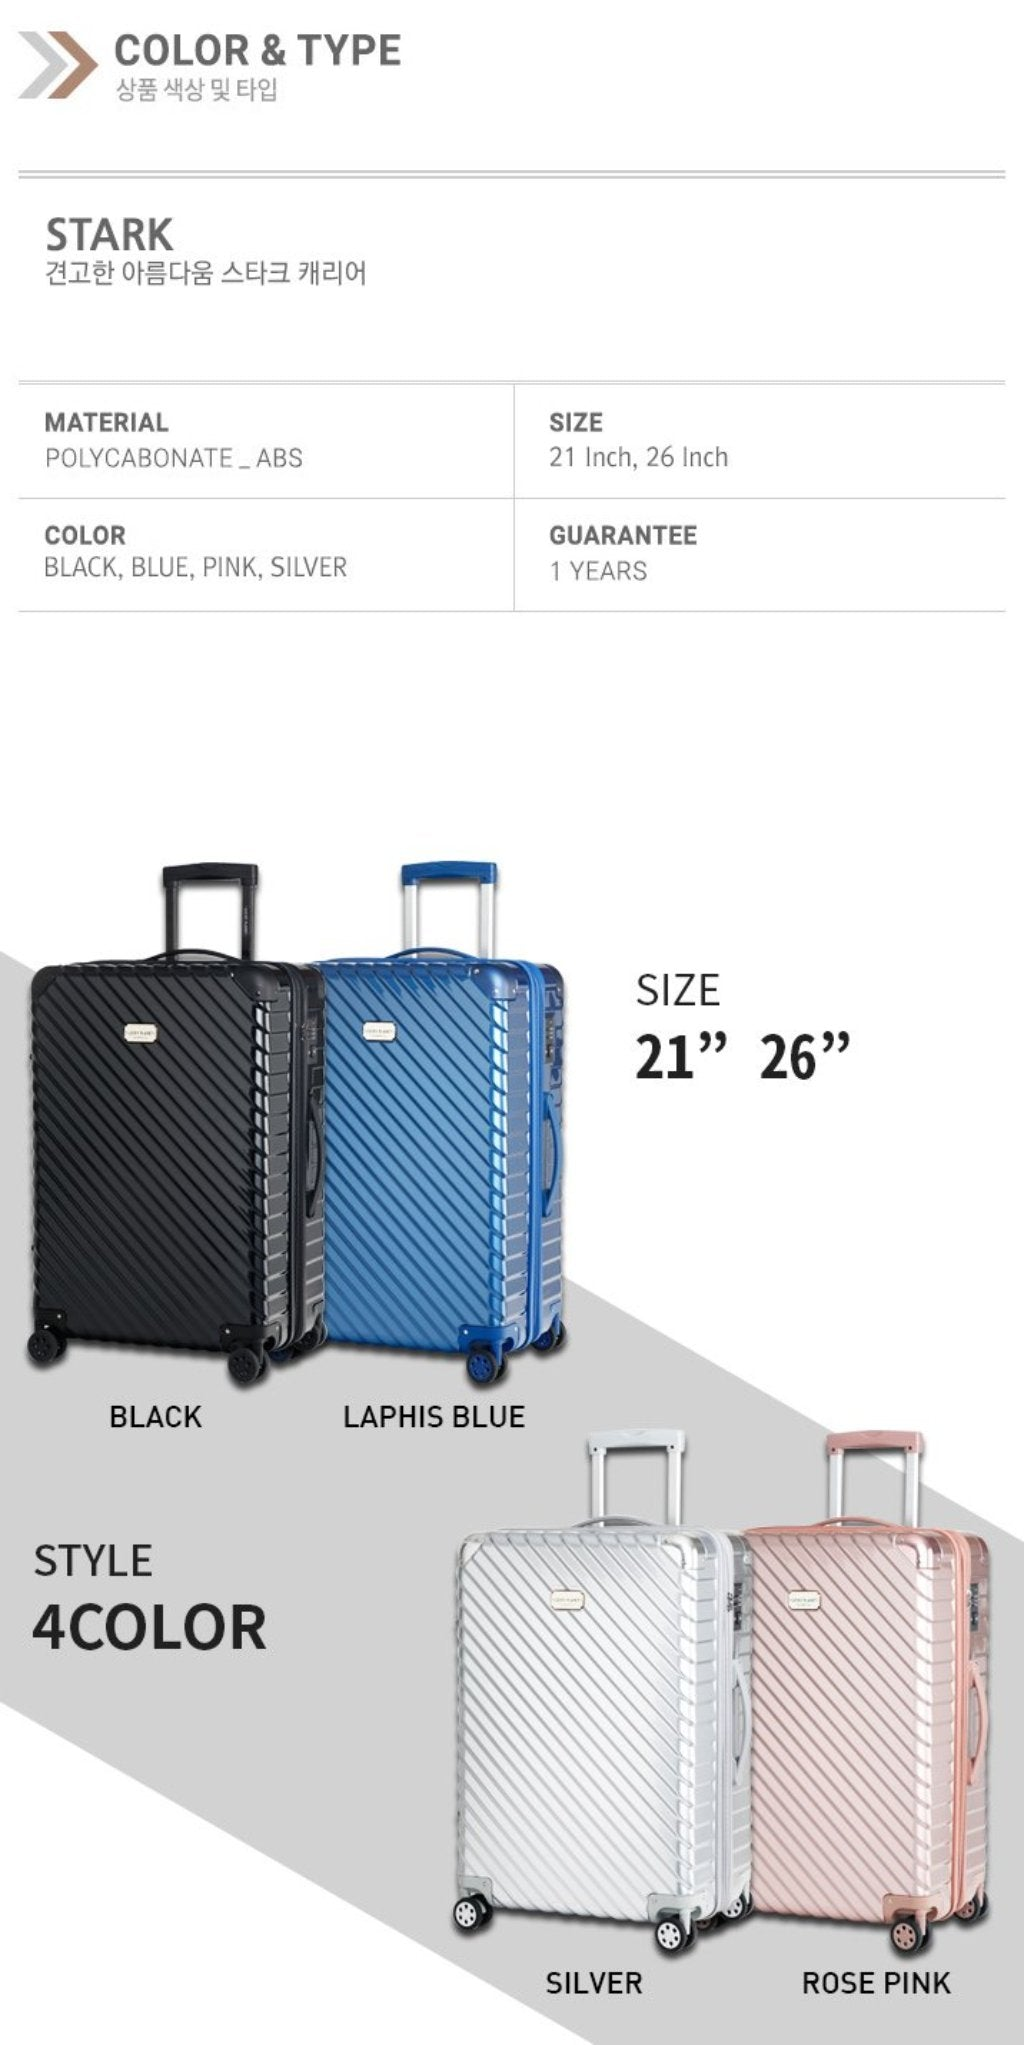 [Lucky Planet] Stark 26-inch Luggage - Luckyplanetusa